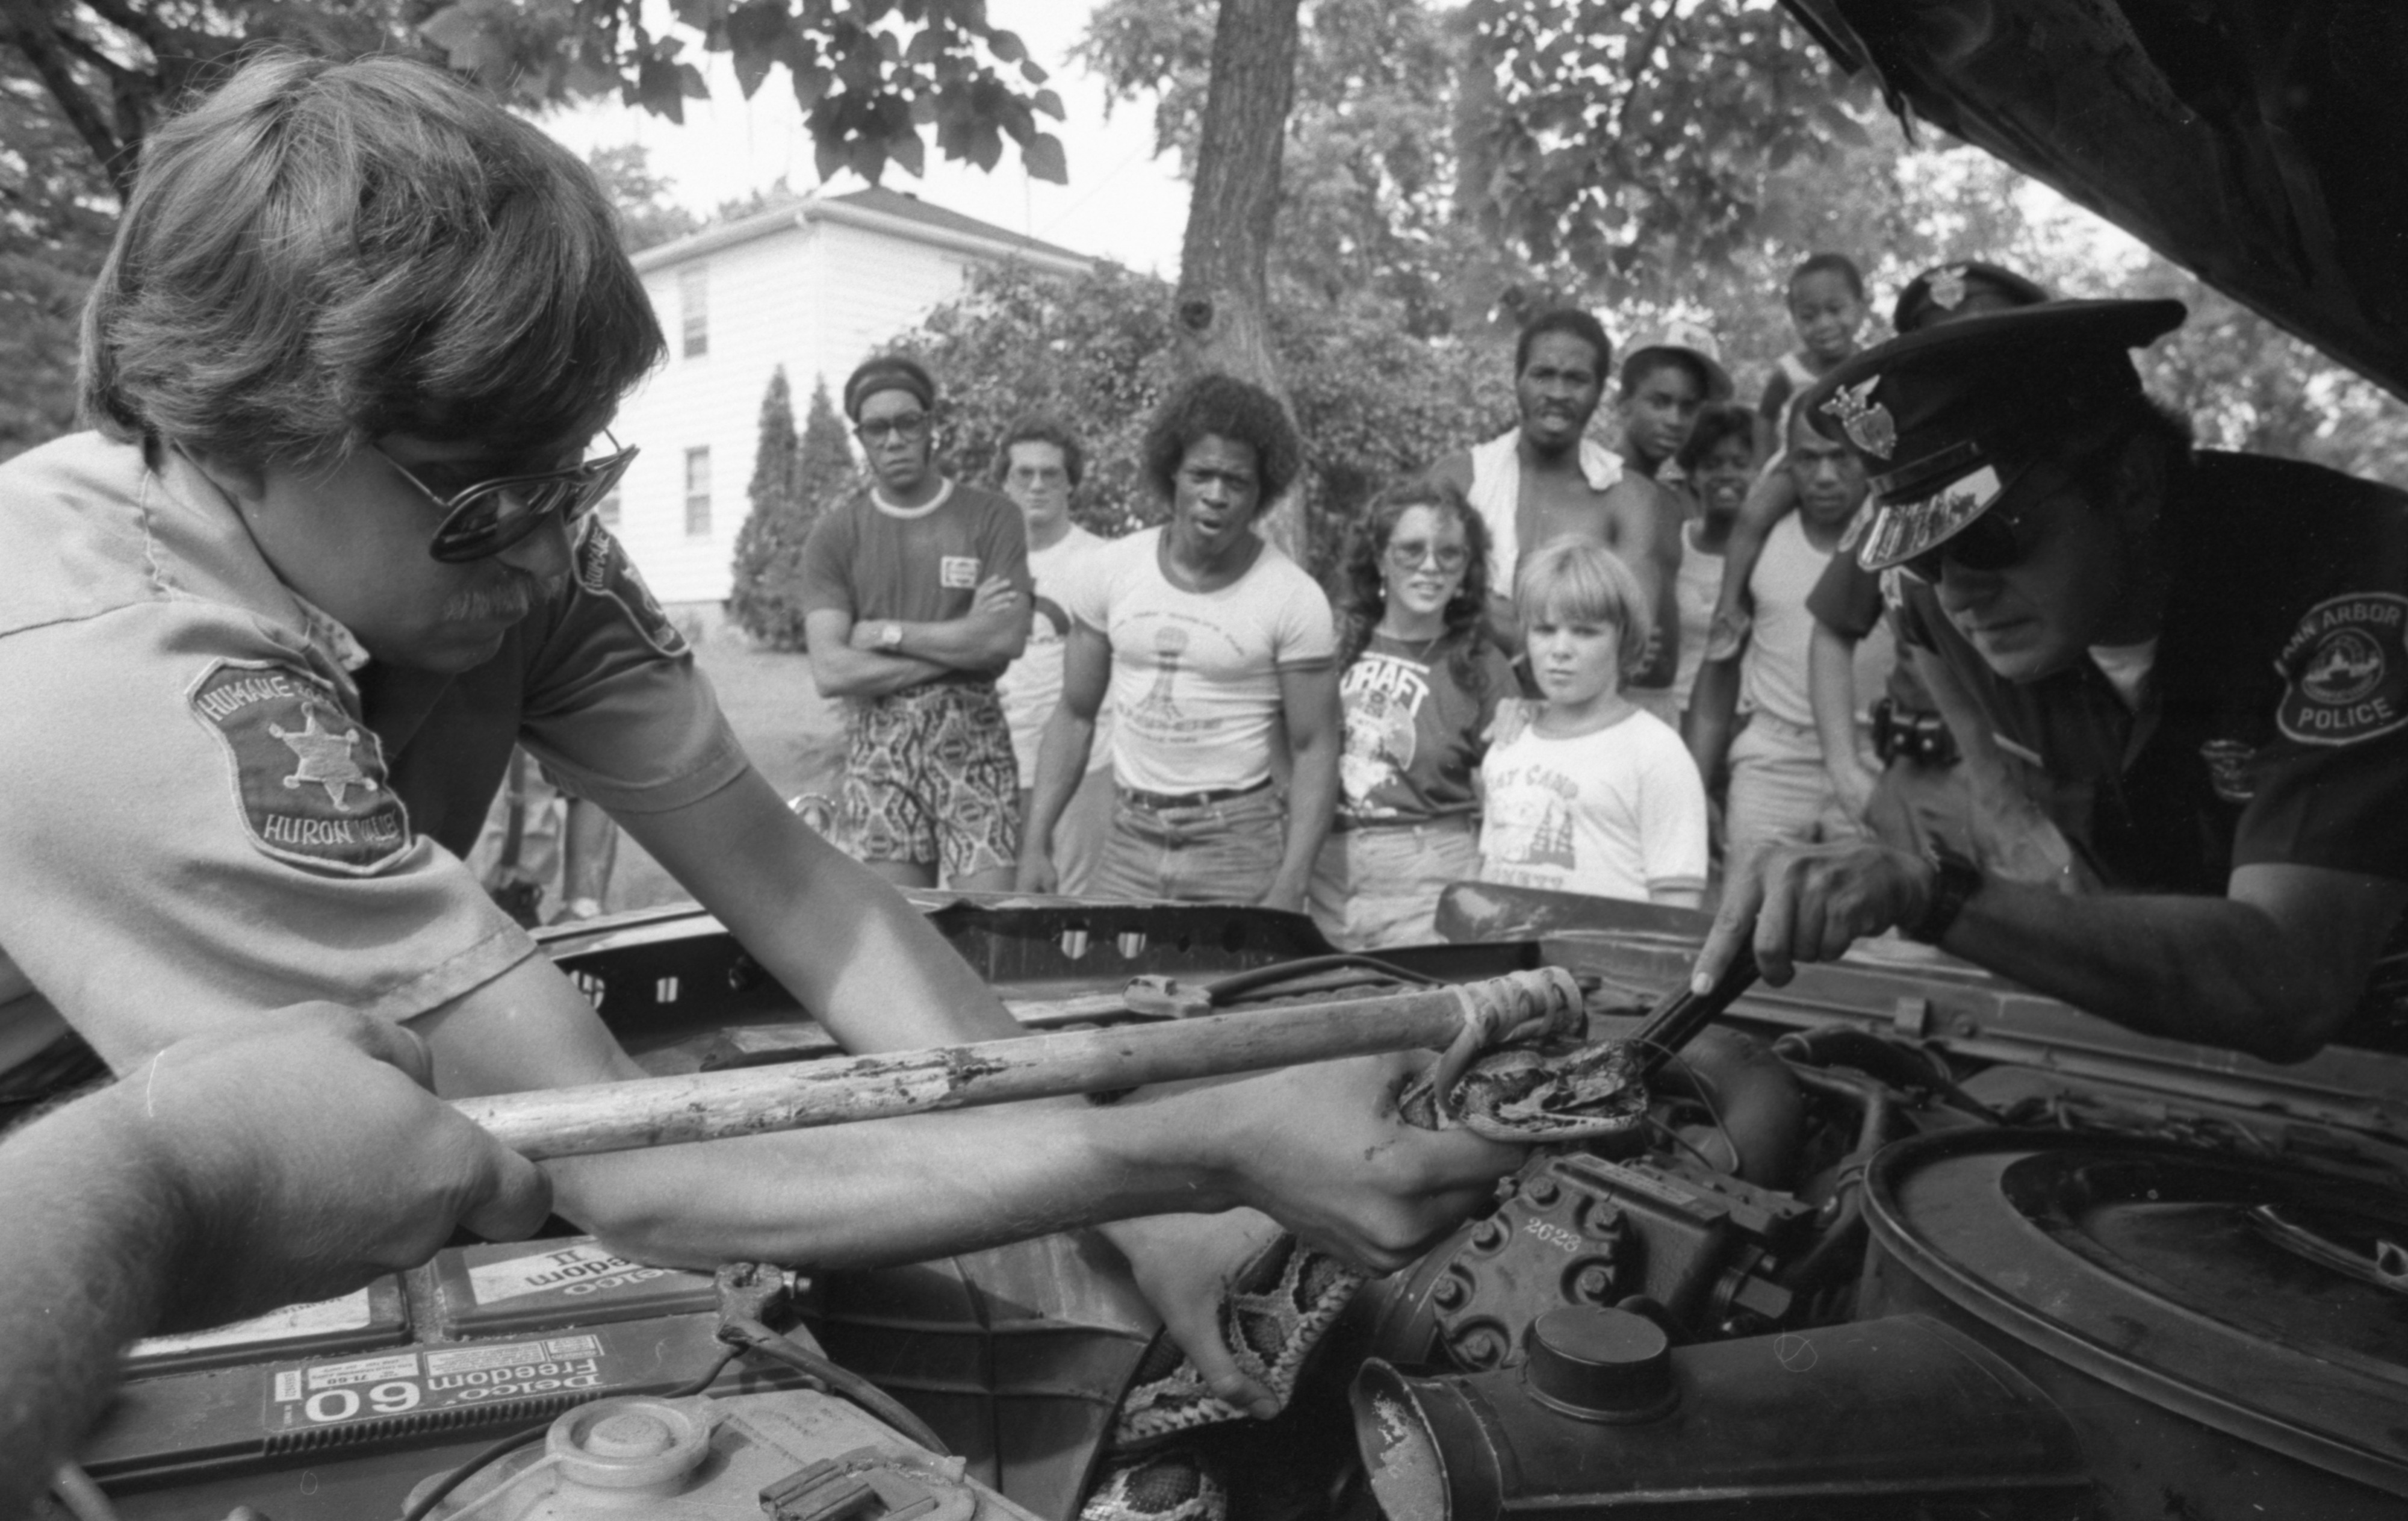 Humane Society Employees & Ann Arbor Police Officers Remove A Python From The Engine Of A Car, August 1983 image